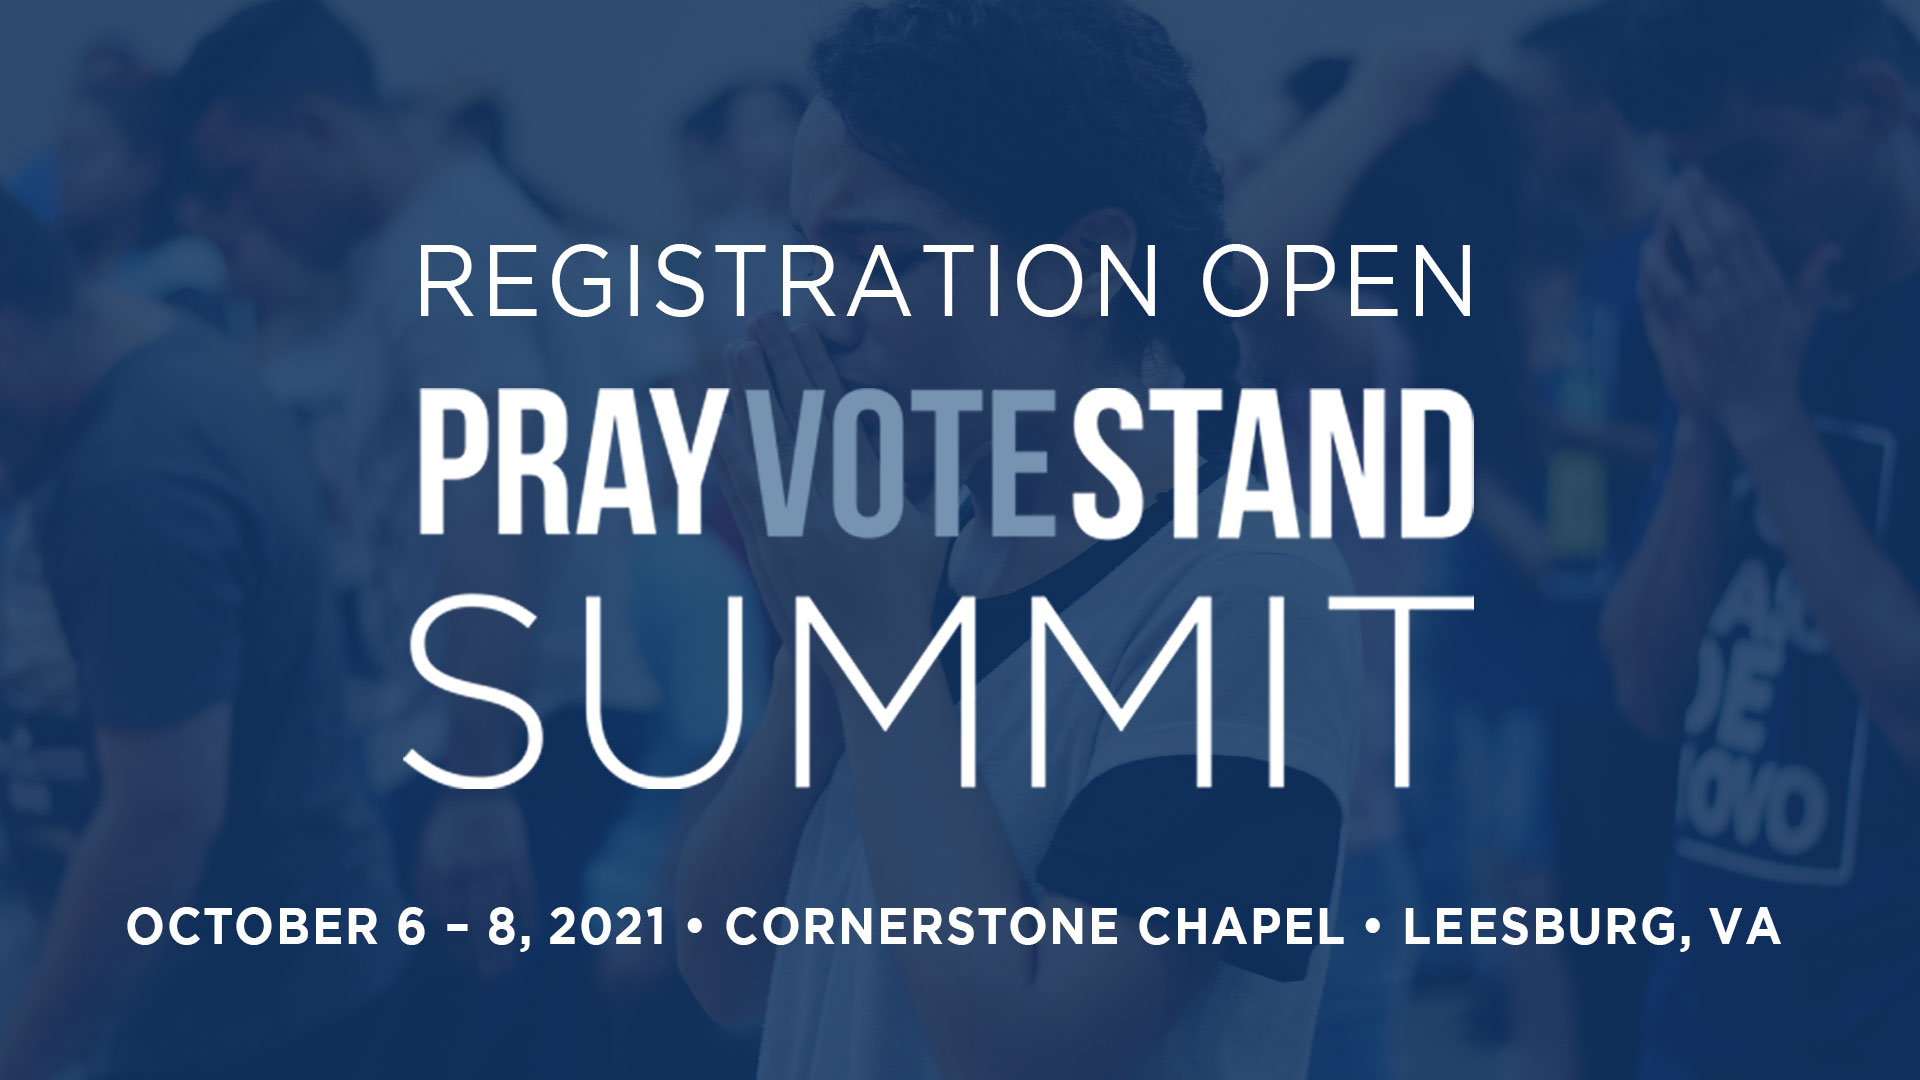 Register for the Pray Vote Stand Summit